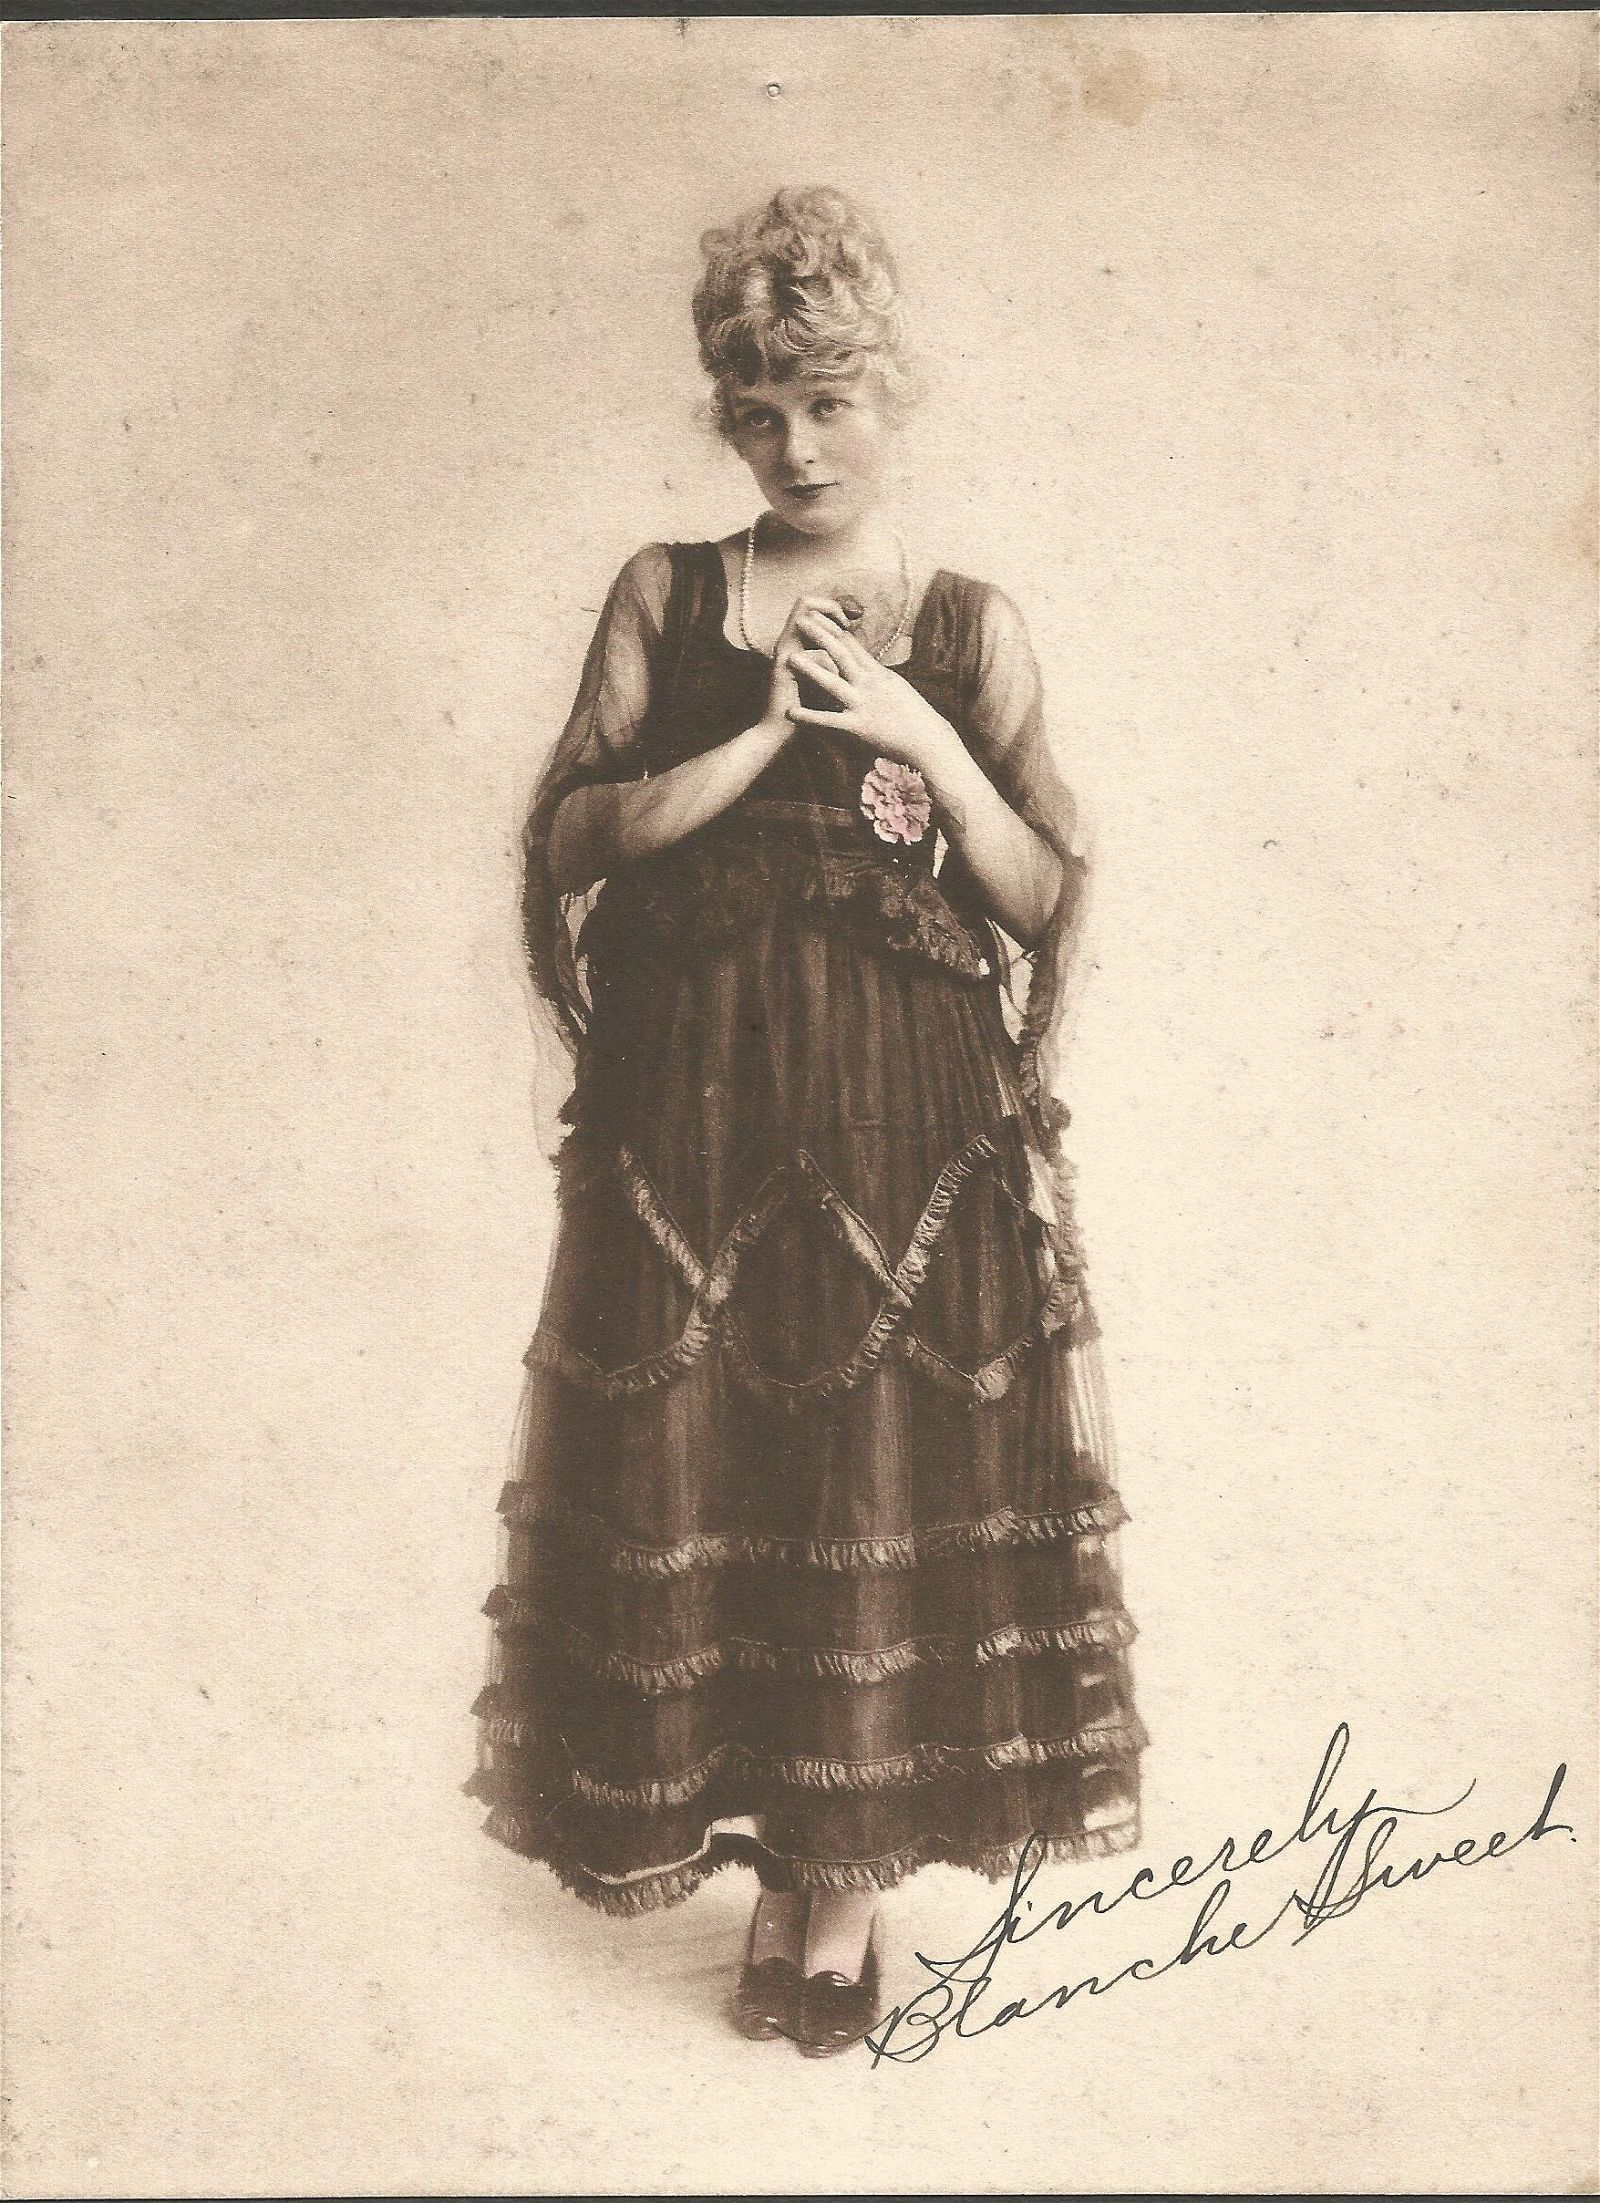 Blanche Sweet vintage signed photograph. This rare